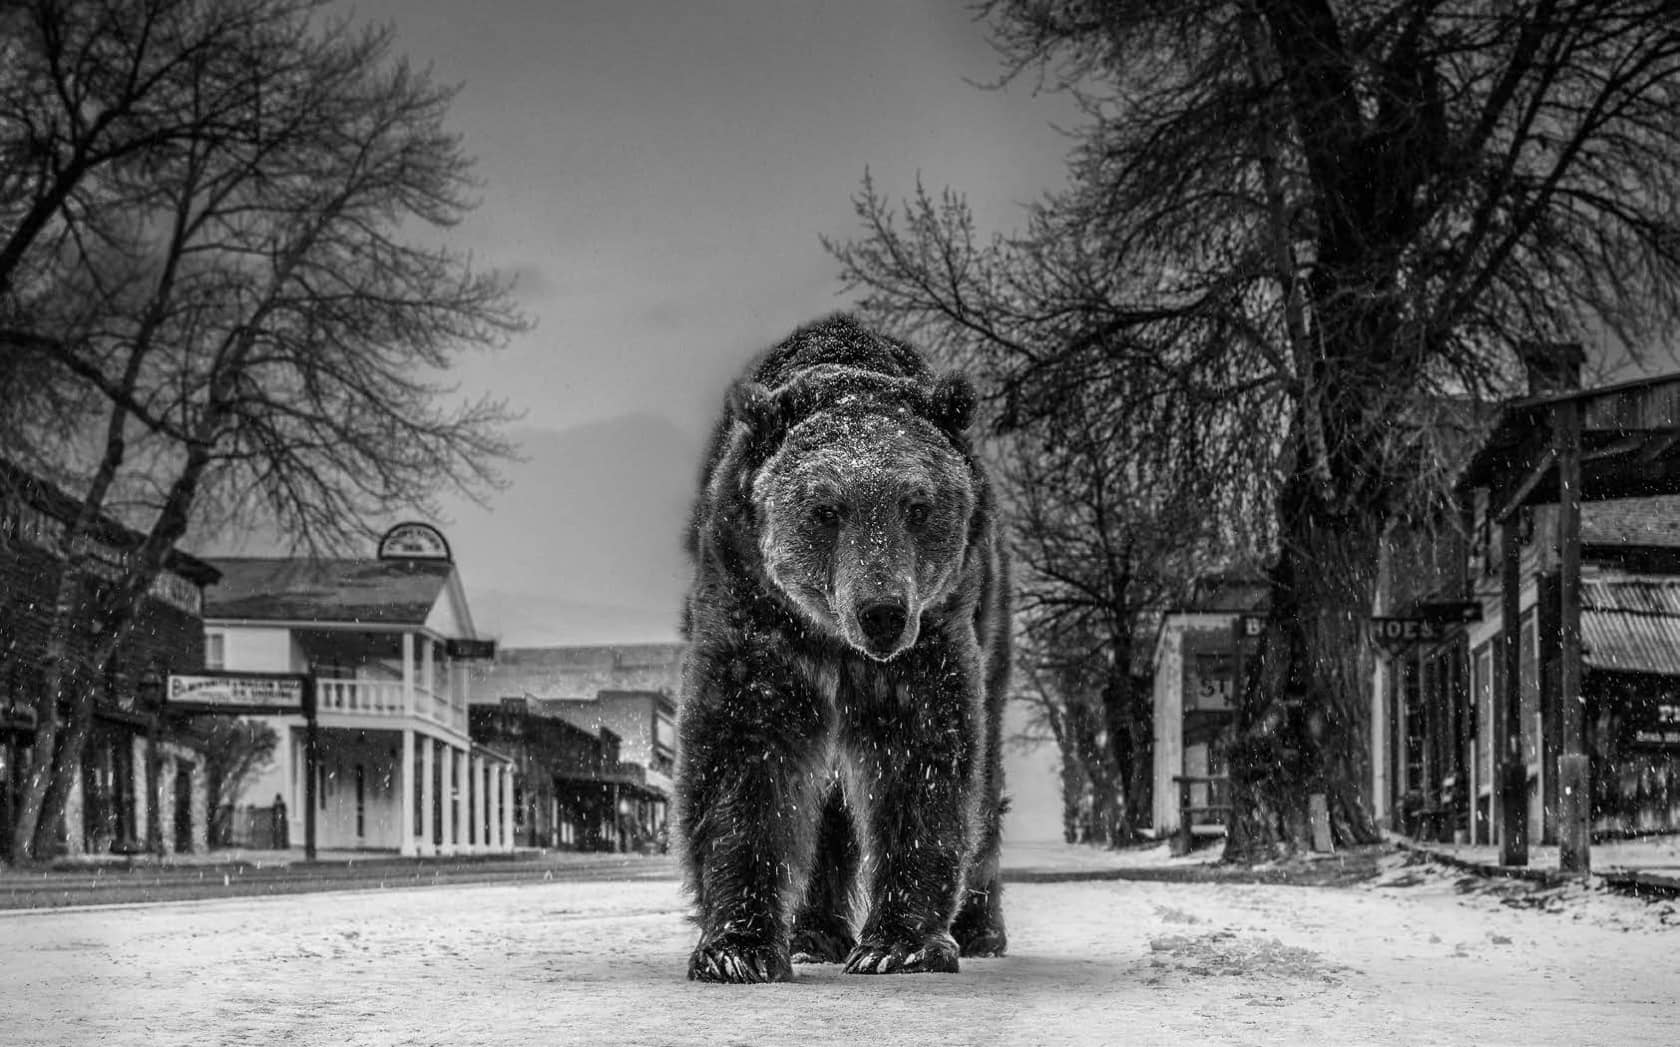 David Yarrow, Out of Towner, 2019